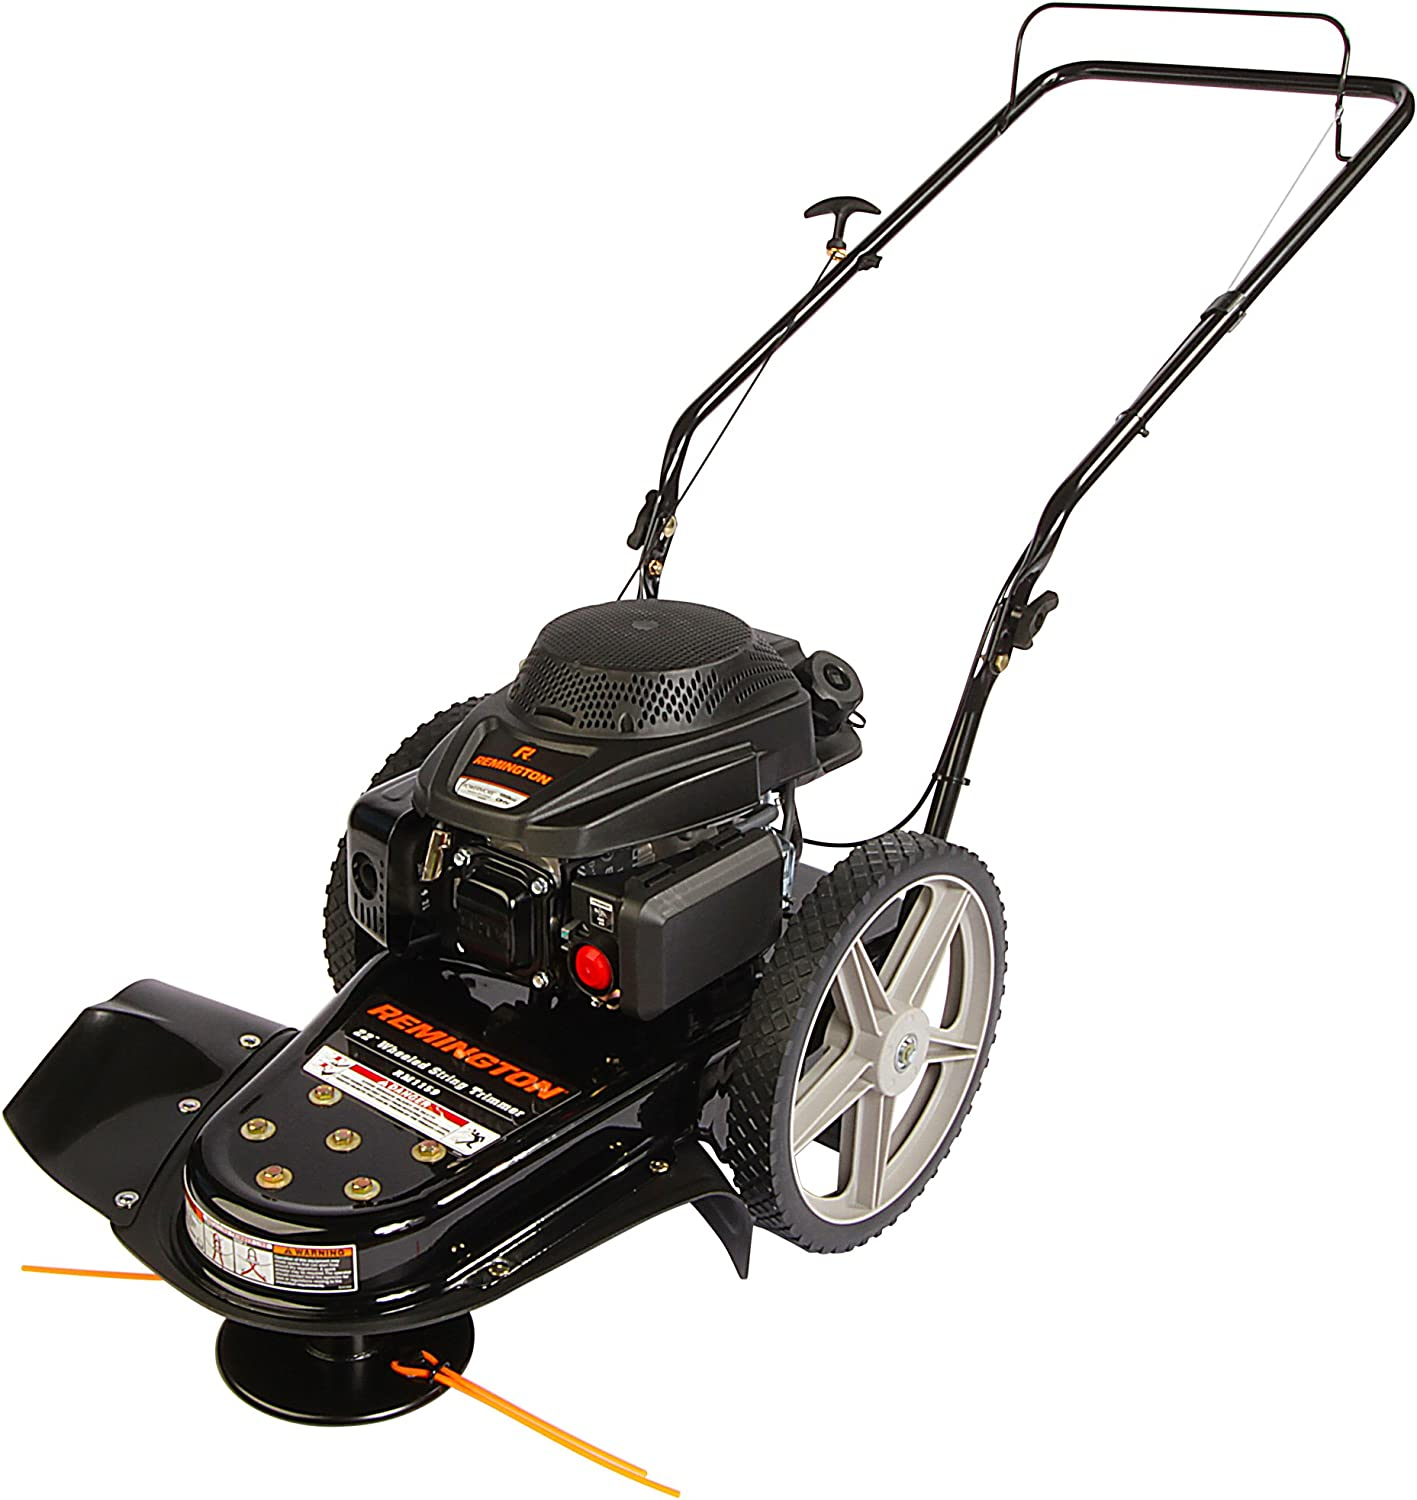 Remington RM1159 159cc 4-Cycle Gas Powered Walk-Behind High-Wheeled String Trimmer